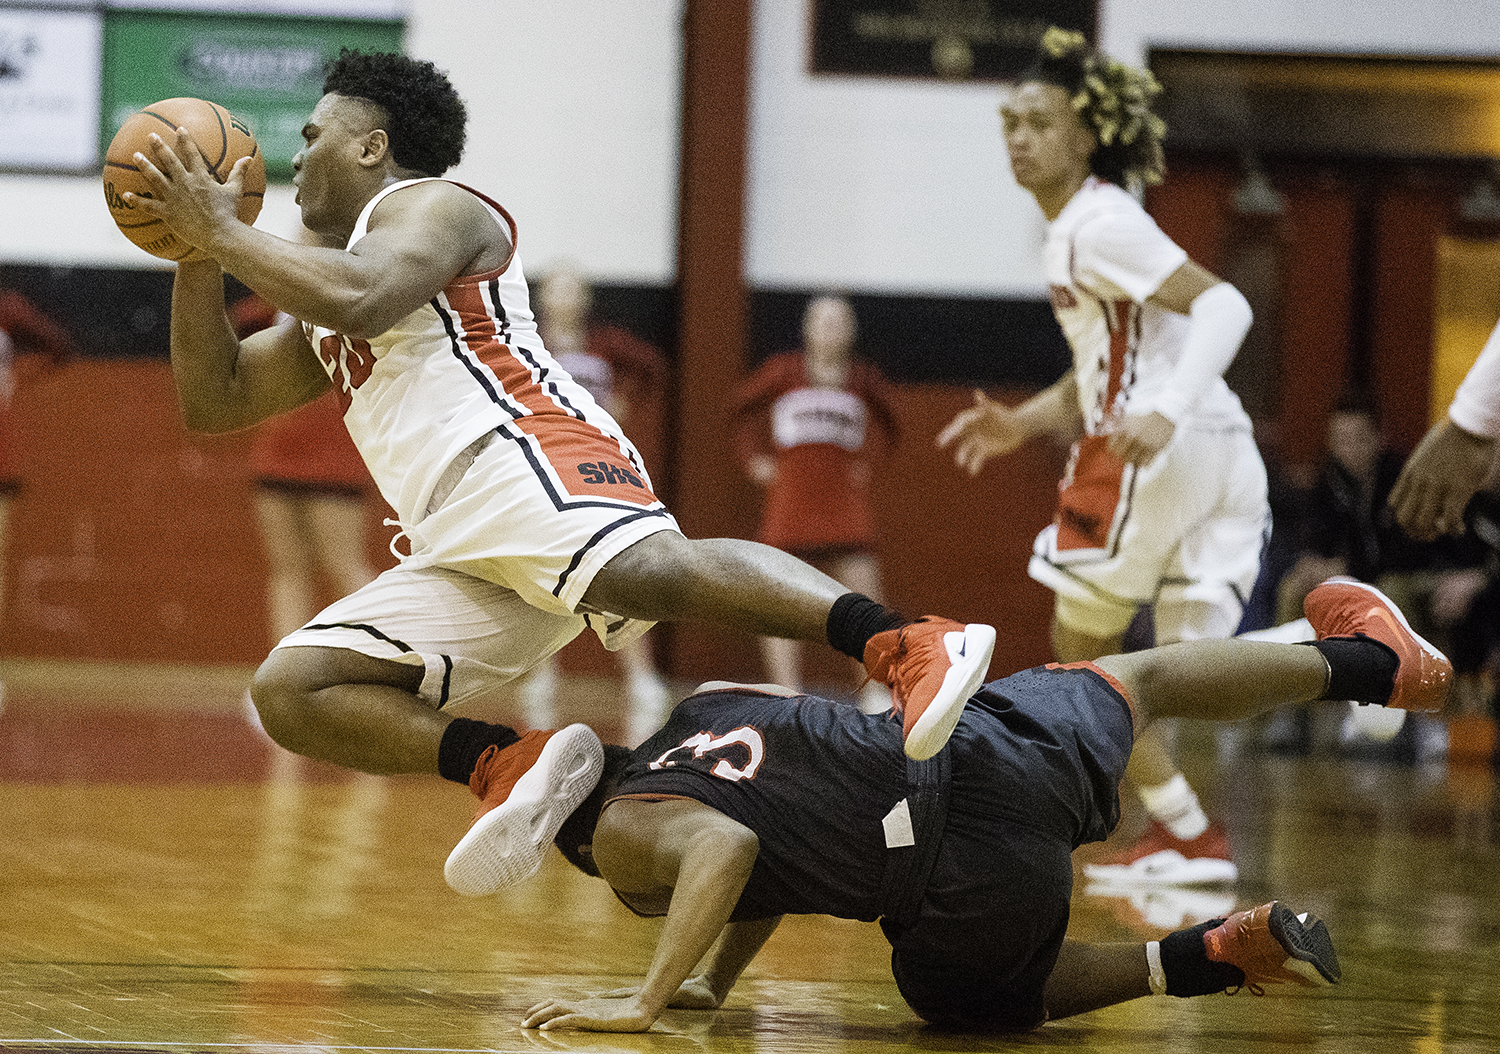 Springfield's Caleb Small is tripped up by Glenwood's Jason Hansbrough at Springfield High School Friday, Feb. 15, 2019. [Ted Schurter/The State Journal-Register]